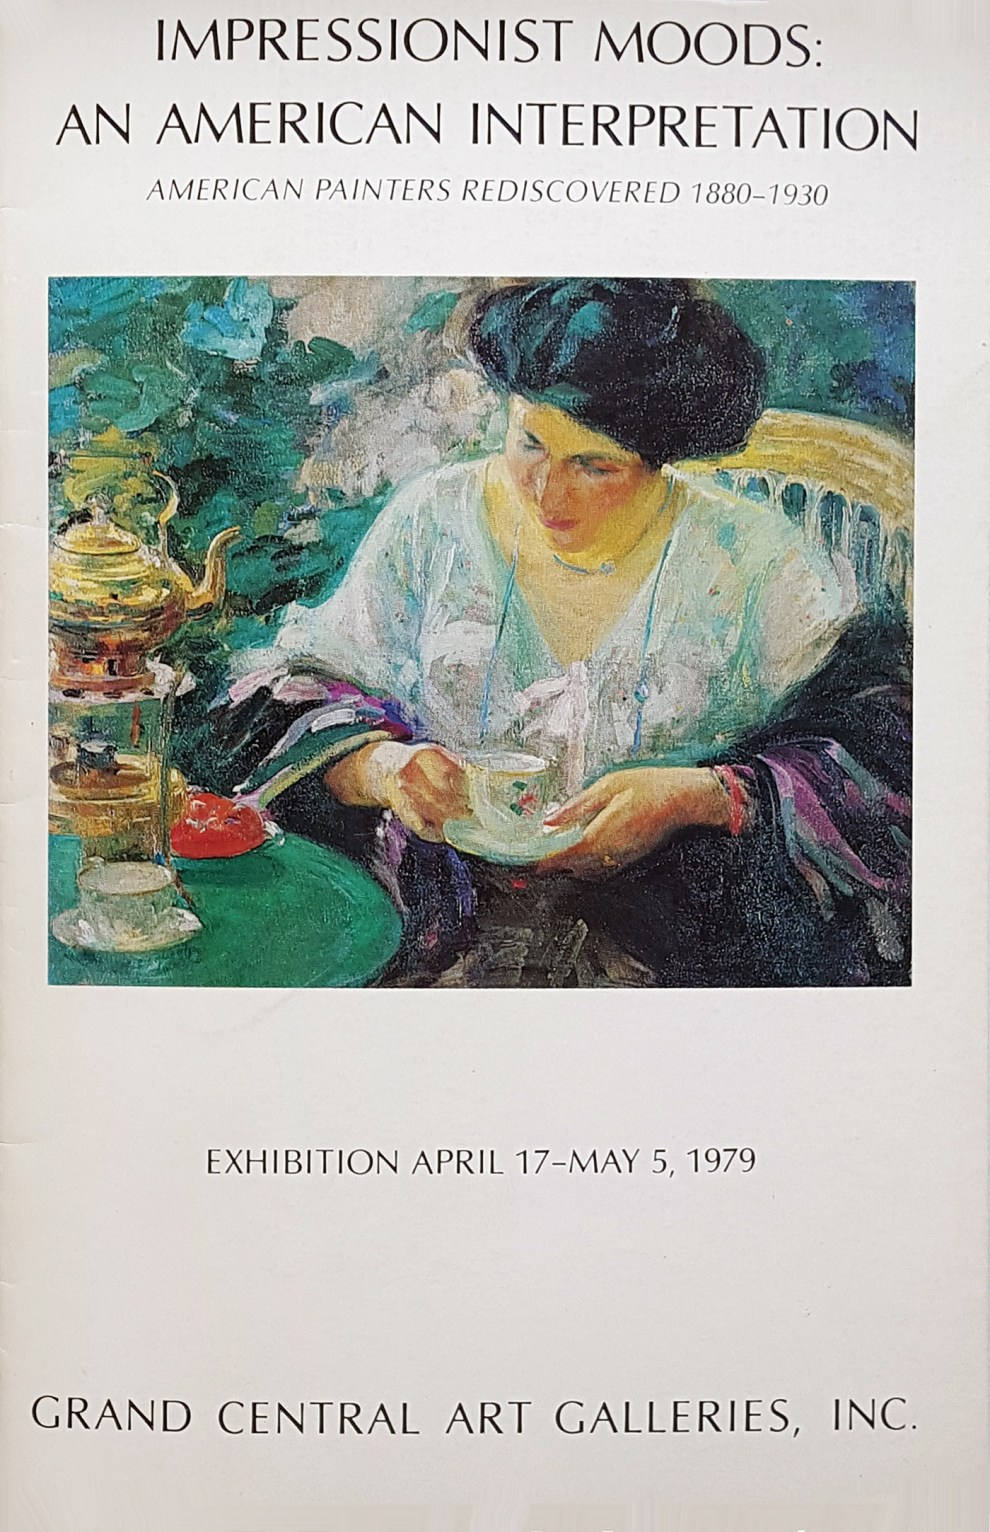 """1979 Grand Central Art Galleries, New York, NY, """"Impressionist moods : an American interpretation"""", April 17 – May 5."""